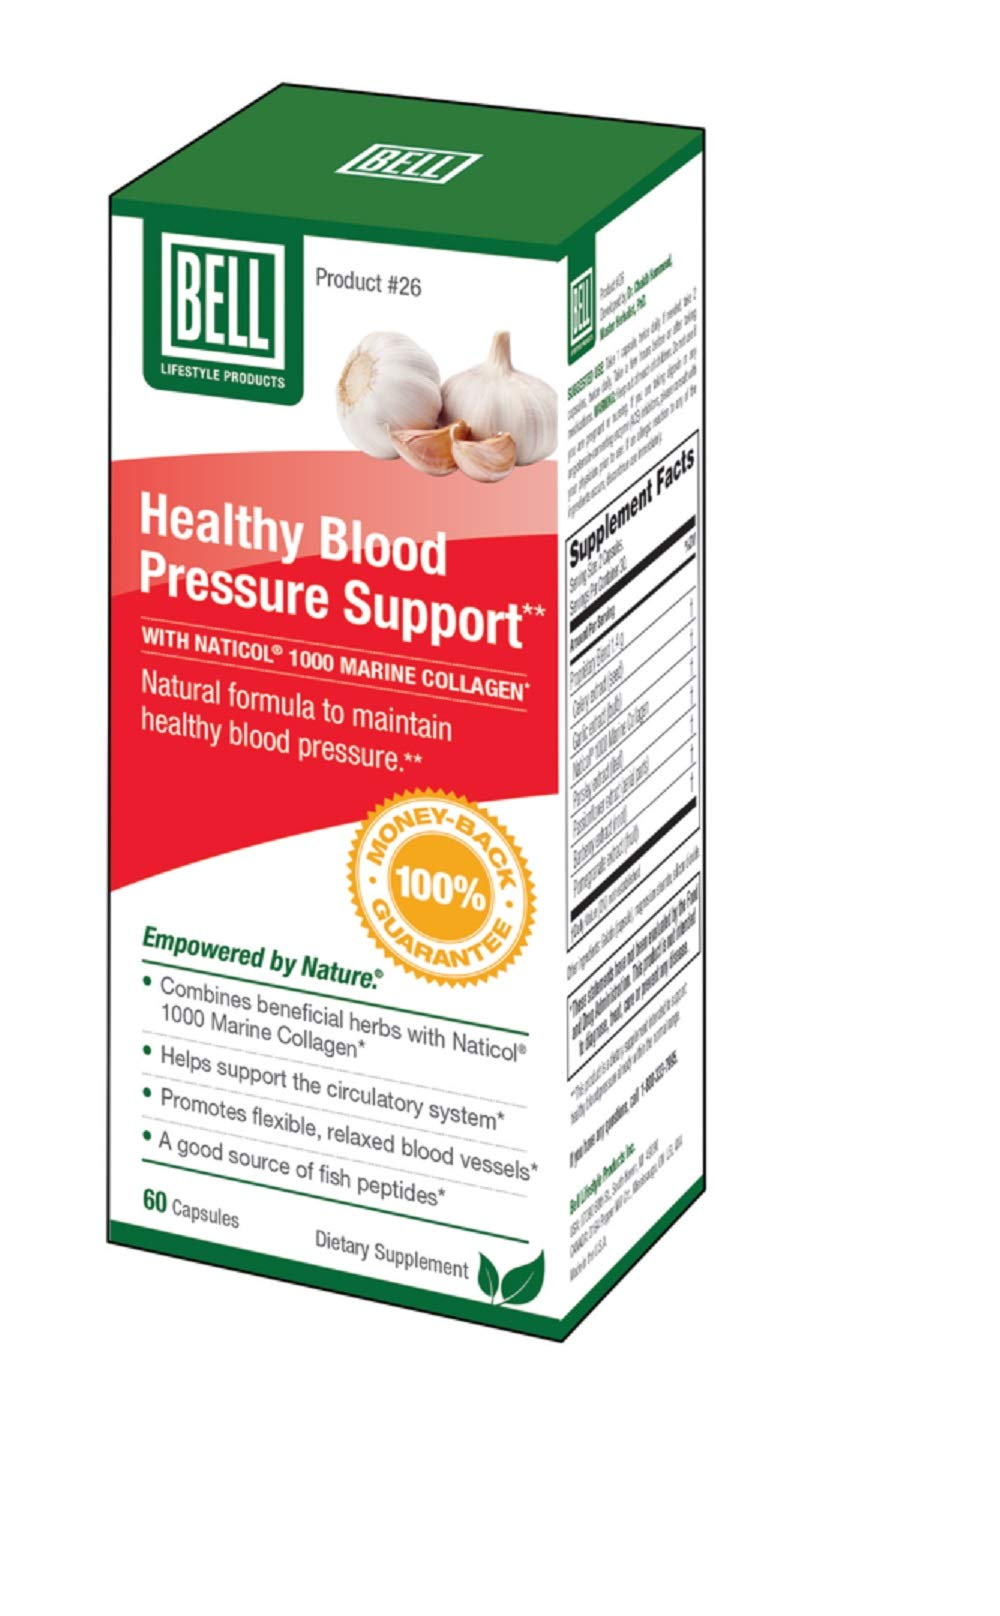 Bell Lifestyle Products Healthy Pressure